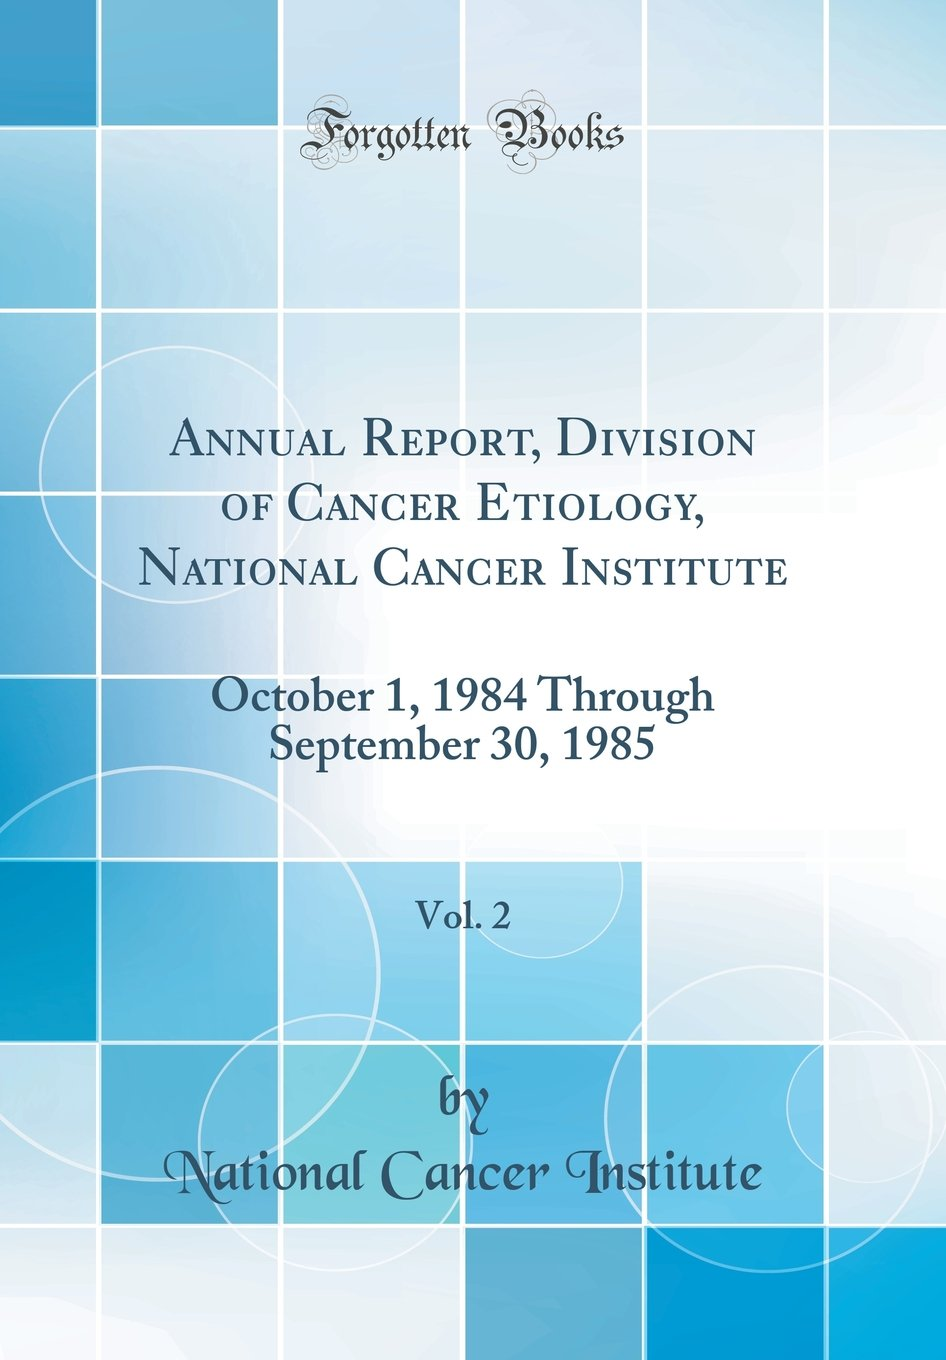 Annual Report, Division of Cancer Etiology, National Cancer Institute, Vol. 2: October 1, 1984 Through September 30, 1985 (Classic Reprint) pdf